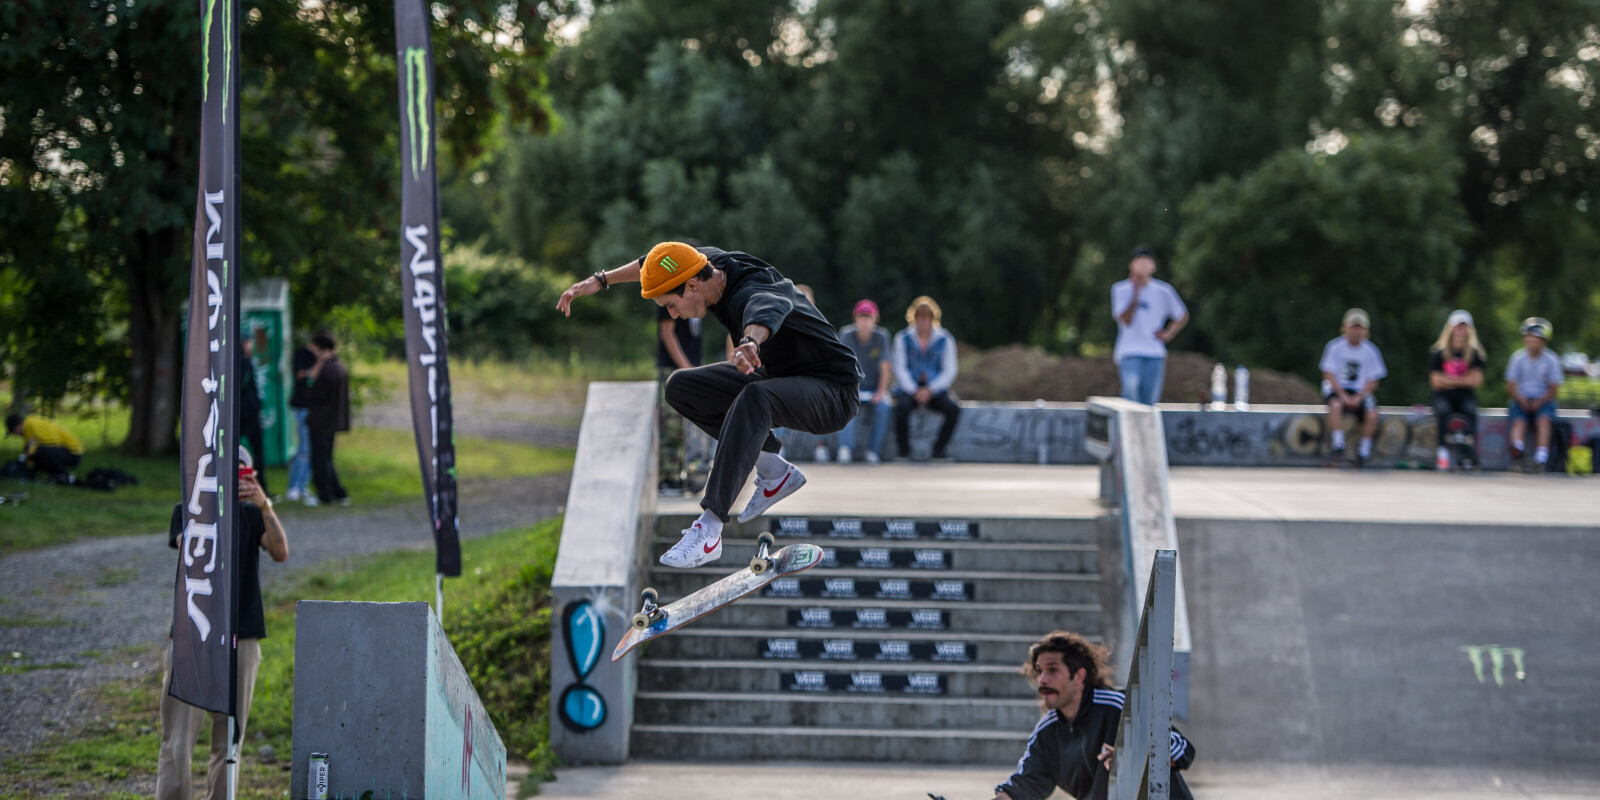 Grand Prix Beroun session Jam 2021 was a best trick contest in Beroun CZ with participation of world's skateboarders including ME ambassadors.